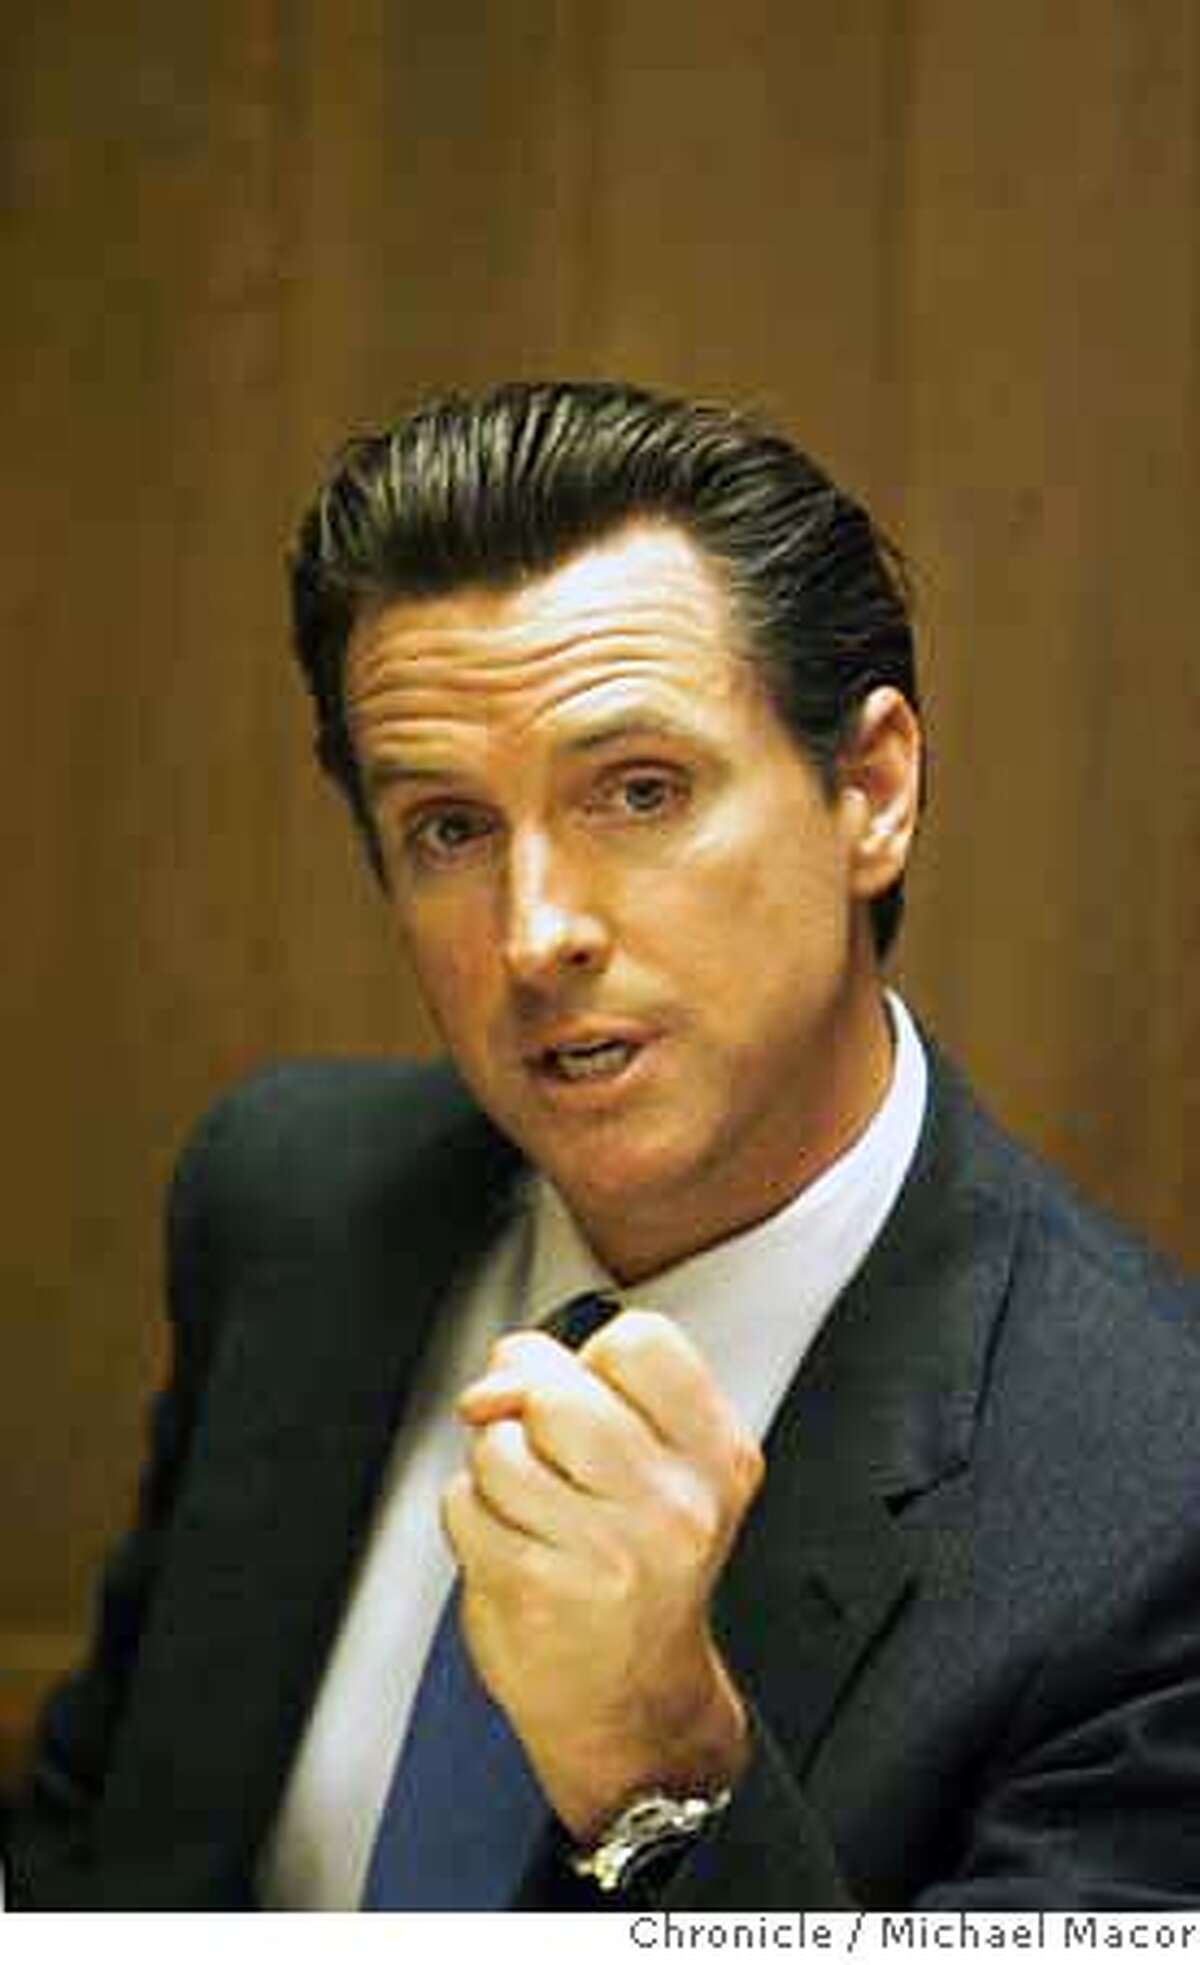 newsom_090_mac.jpg San Francisco Mayor Gavin Newson speaks with the editorial board of The Chronicle. Photographed in, San Francisco, Ca, on 3/27/07. Photo by: Michael Macor/ The Chronicle Mandatory credit for Photographer and San Francisco Chronicle No sales/ Magazines Out